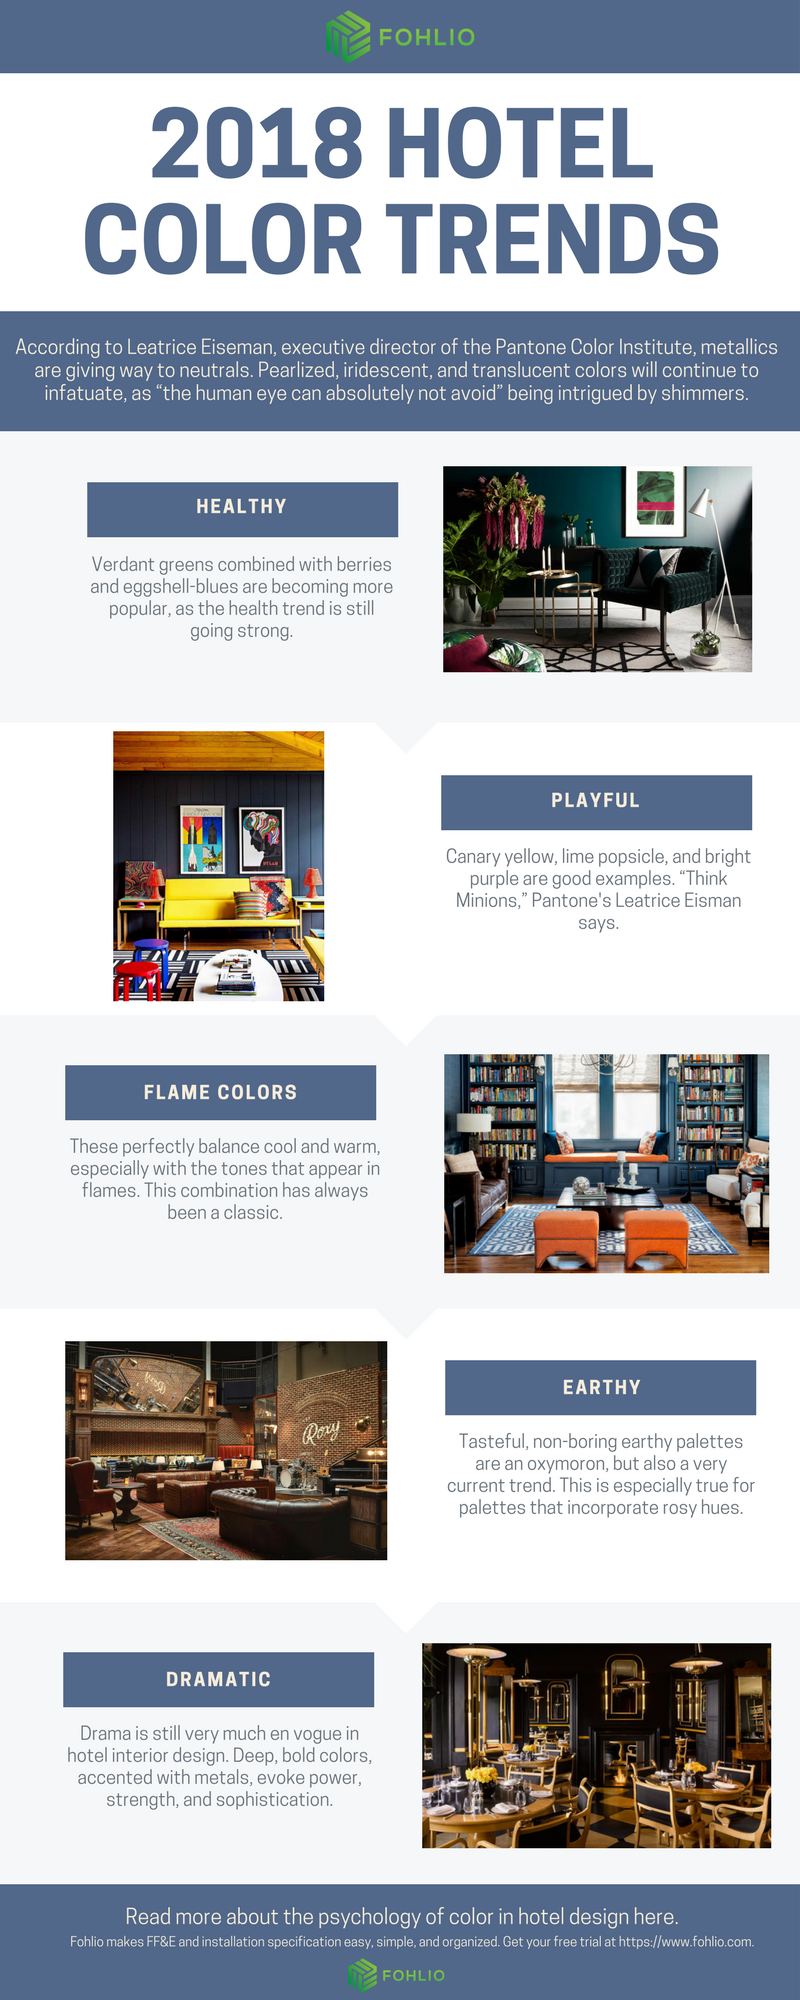 Hotel Interior Design Part 1 The Psychology Of Color And 2018